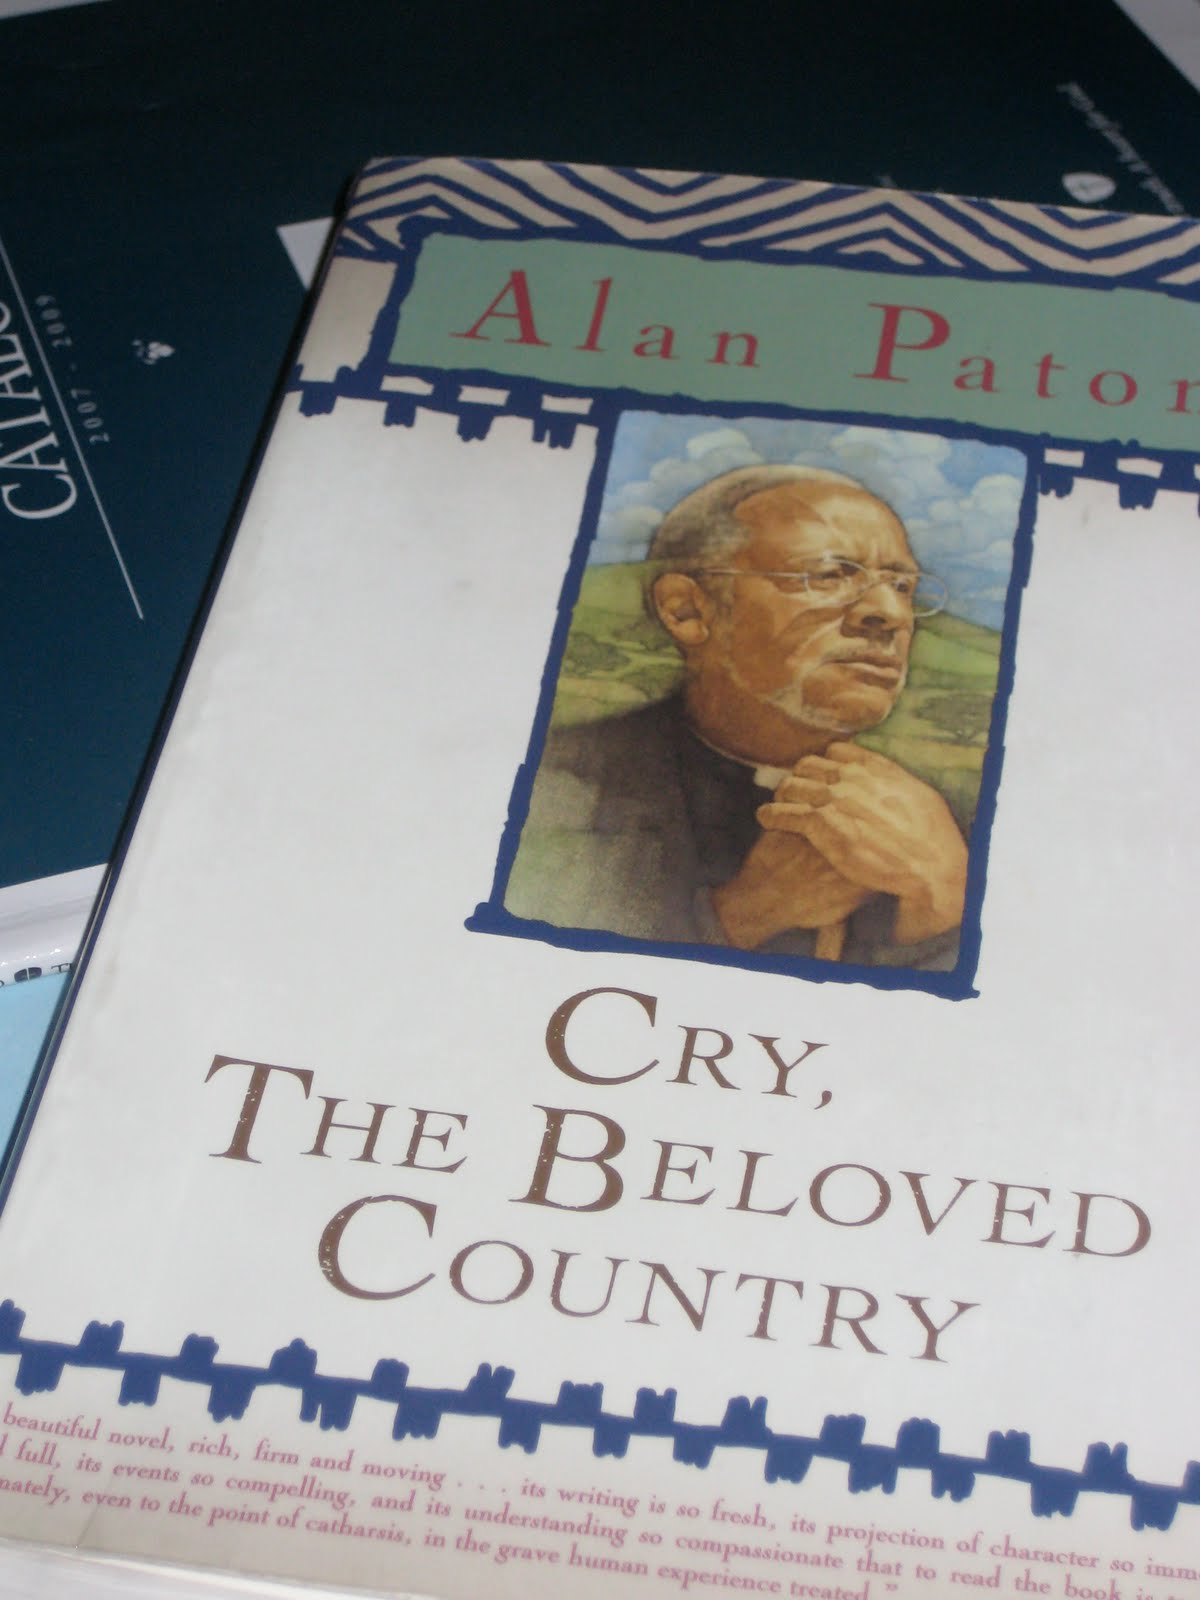 Agitation and turmoil of the whites and blacks in the book cry the beloved country by alan paton